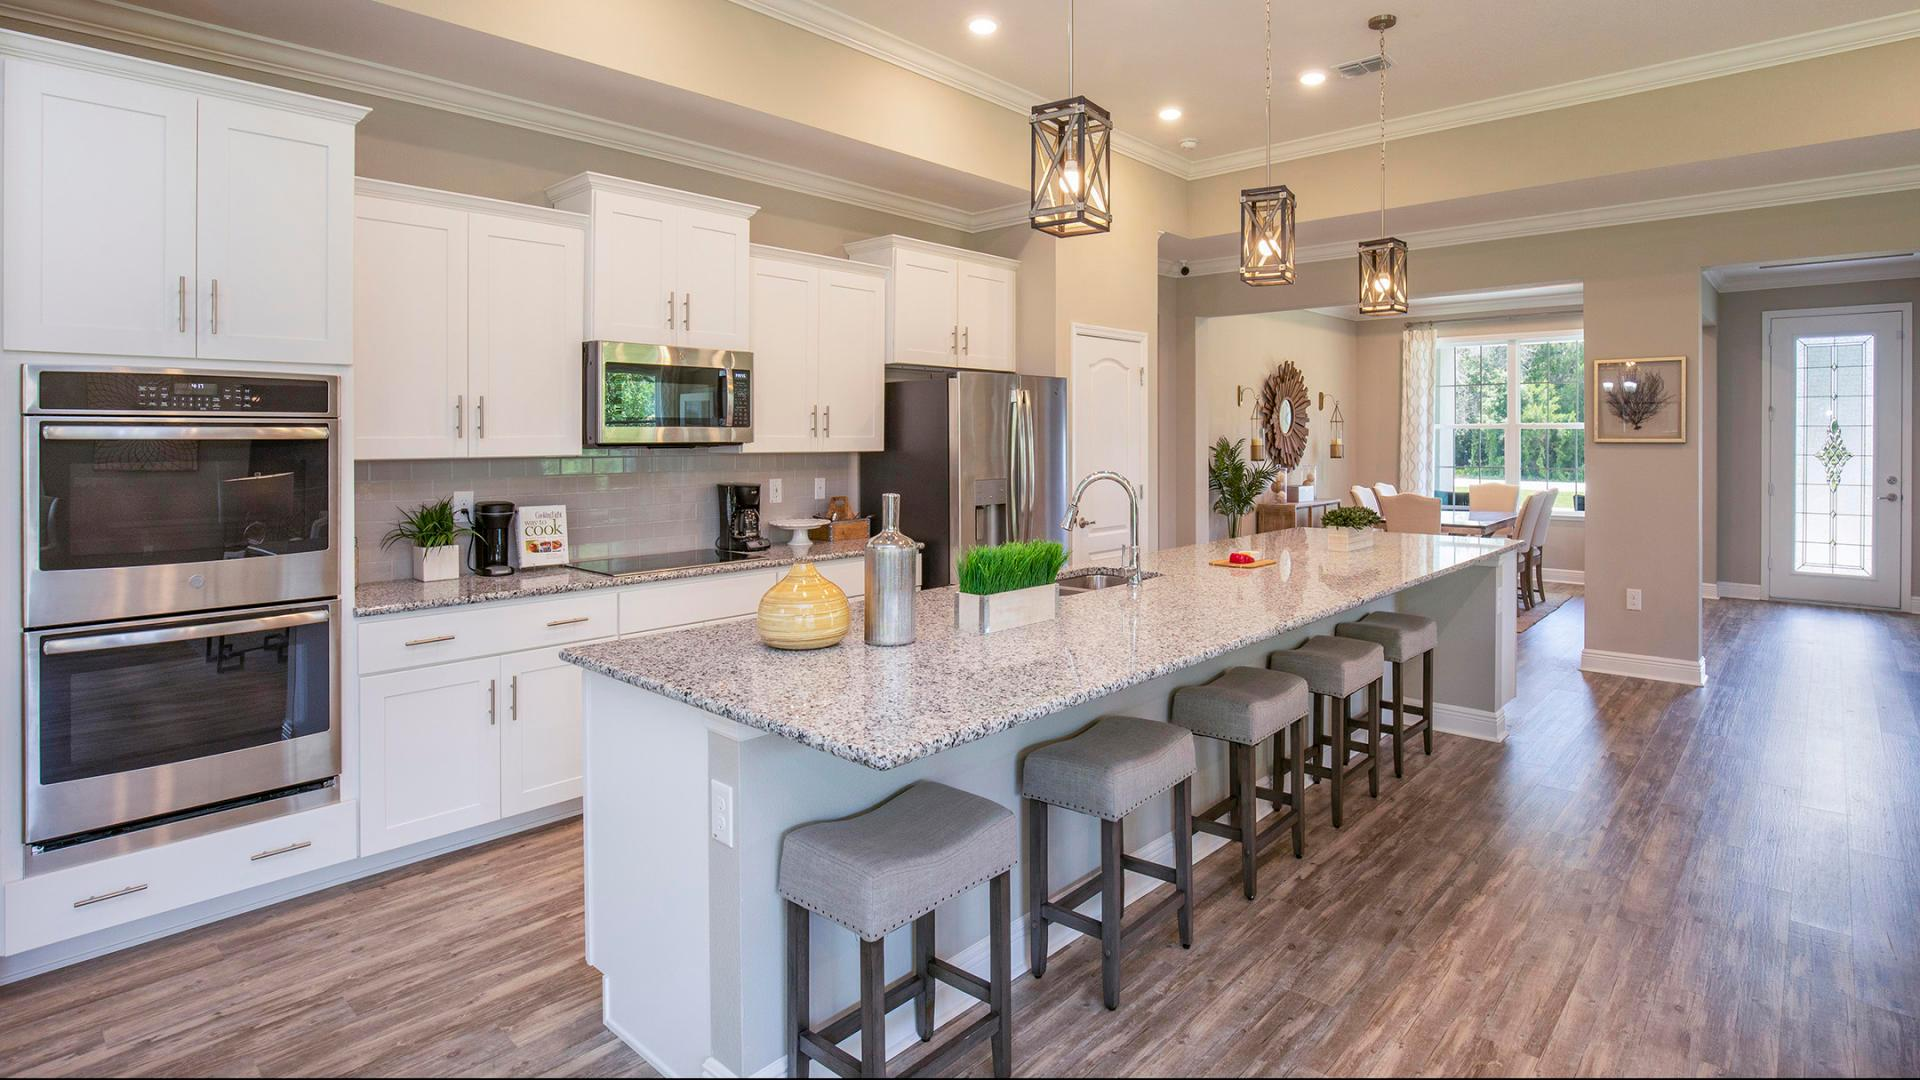 Kitchen featured in the Sienna By Maronda Homes in Tampa-St. Petersburg, FL